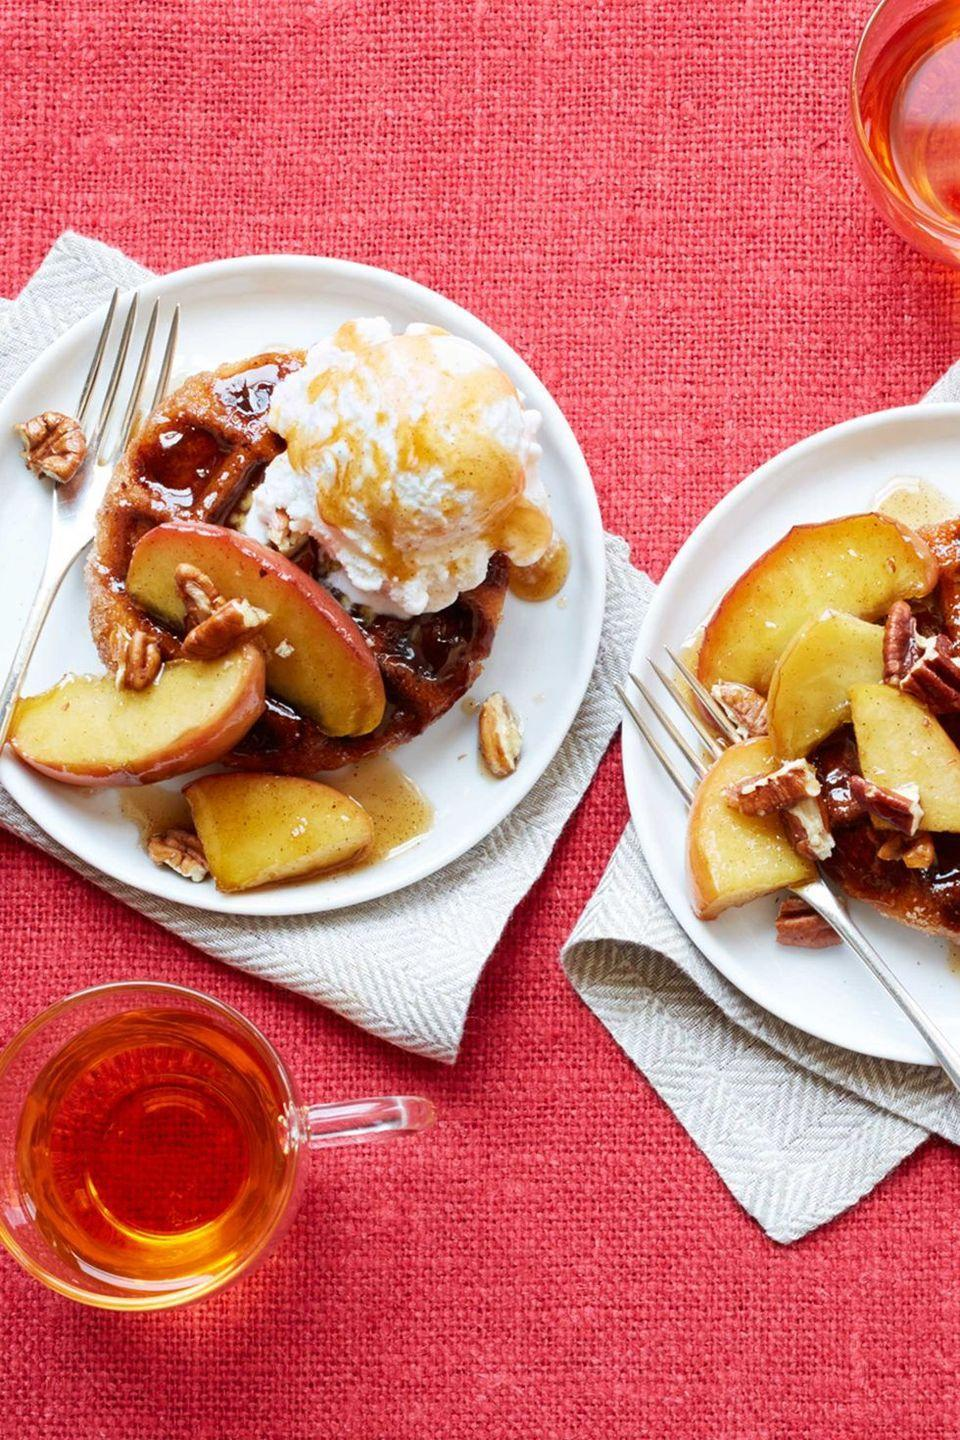 "<p>These waffles are so deliciously sweet, you'll want to have them as a dessert, not for breakfast! The sautéed apples give them the perfect fall taste. </p><p><strong><em><a href=""https://www.womansday.com/food-recipes/food-drinks/recipes/a56158/sugared-waffles-with-sauteed-recipe/"" rel=""nofollow noopener"" target=""_blank"" data-ylk=""slk:Get the Sugared Waffles with Sautéed Maple Apples recipe."" class=""link rapid-noclick-resp"">Get the Sugared Waffles with Sautéed Maple Apples recipe. </a></em></strong></p>"